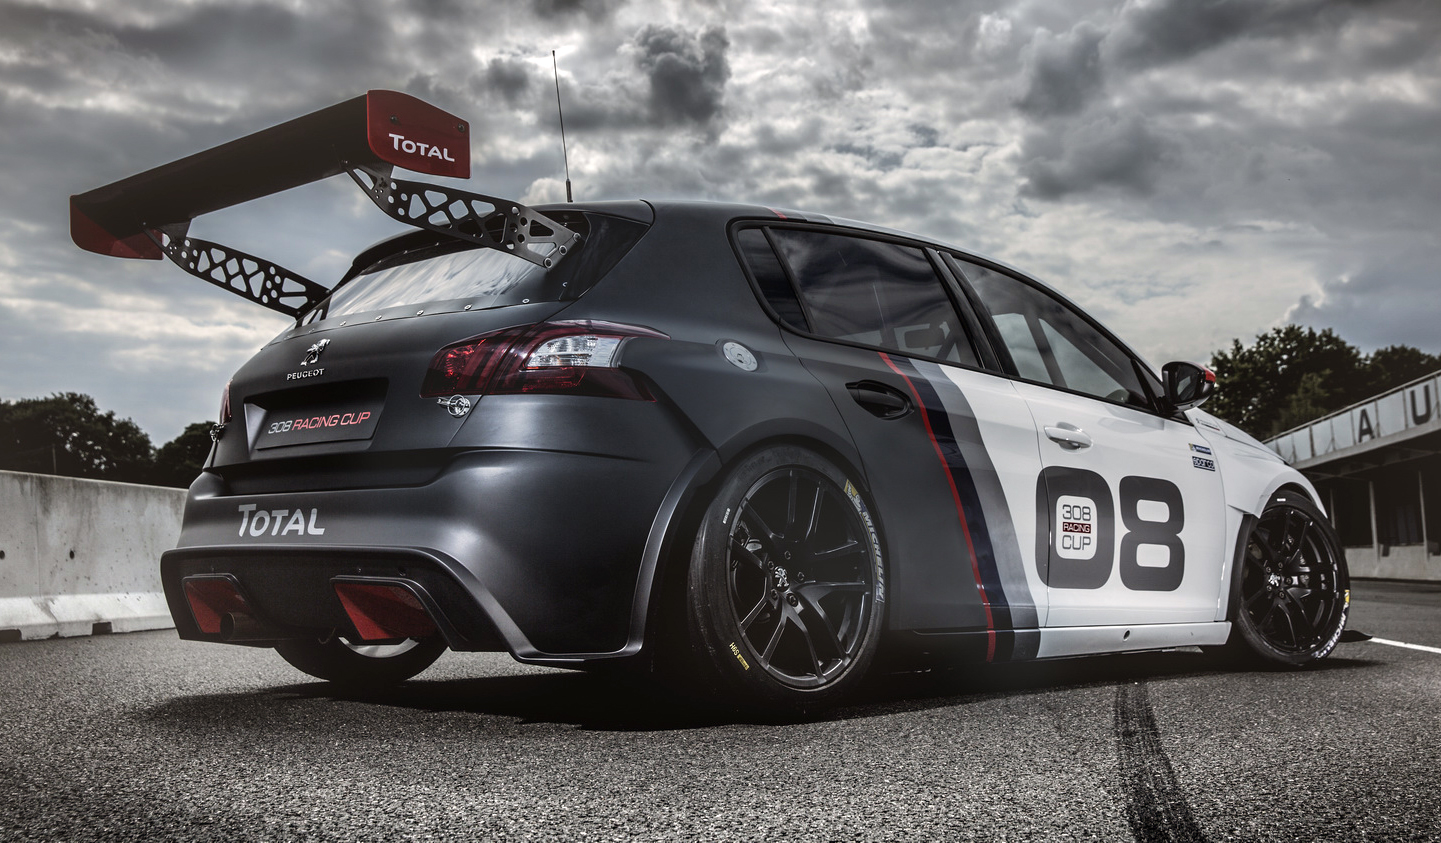 2019 Gt 500 >> Peugeot 308 Racing Cup revealed as RCZ track car replacement - video - photos | CarAdvice